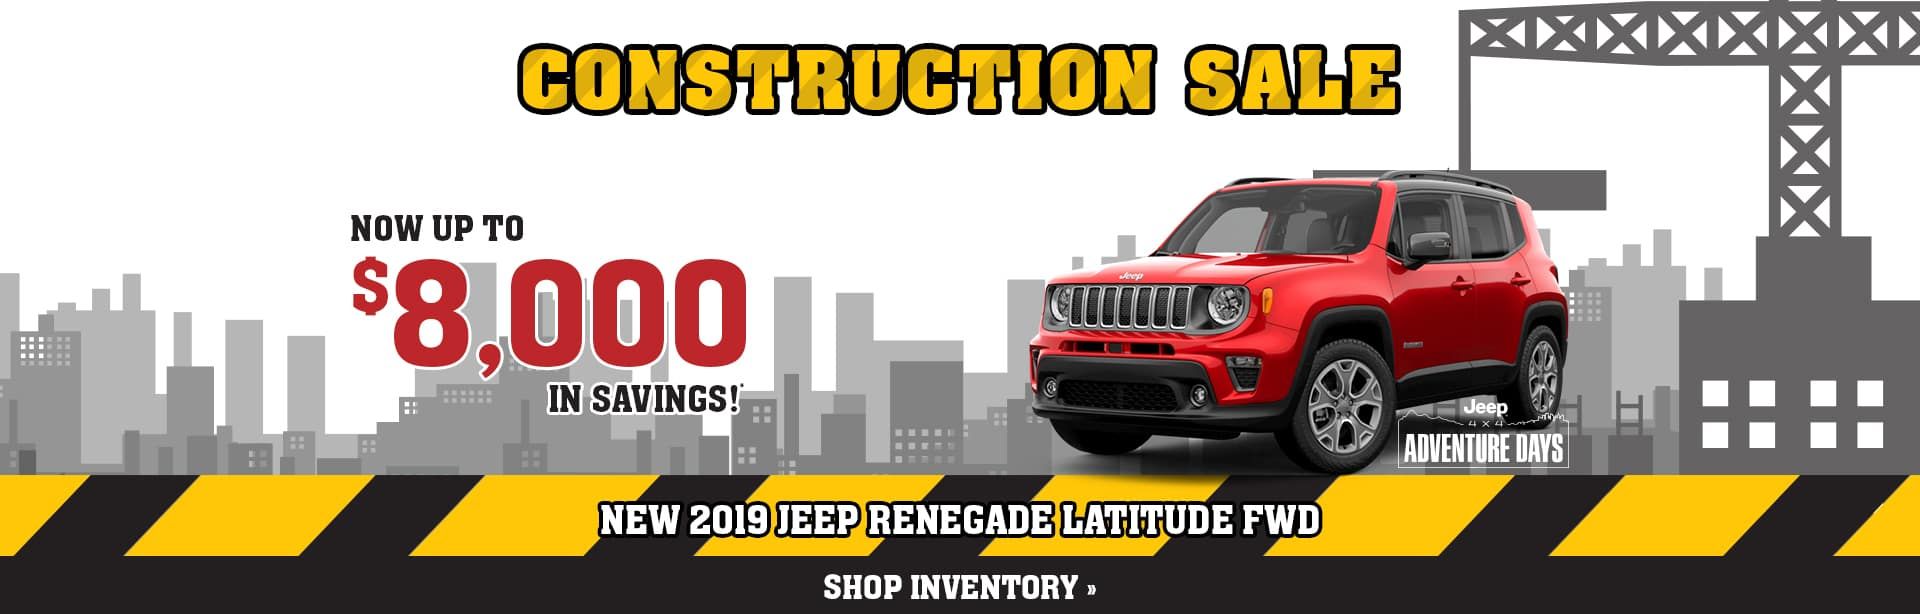 Best Deal on a New Jeep Renegade near Greencastle, Indiana